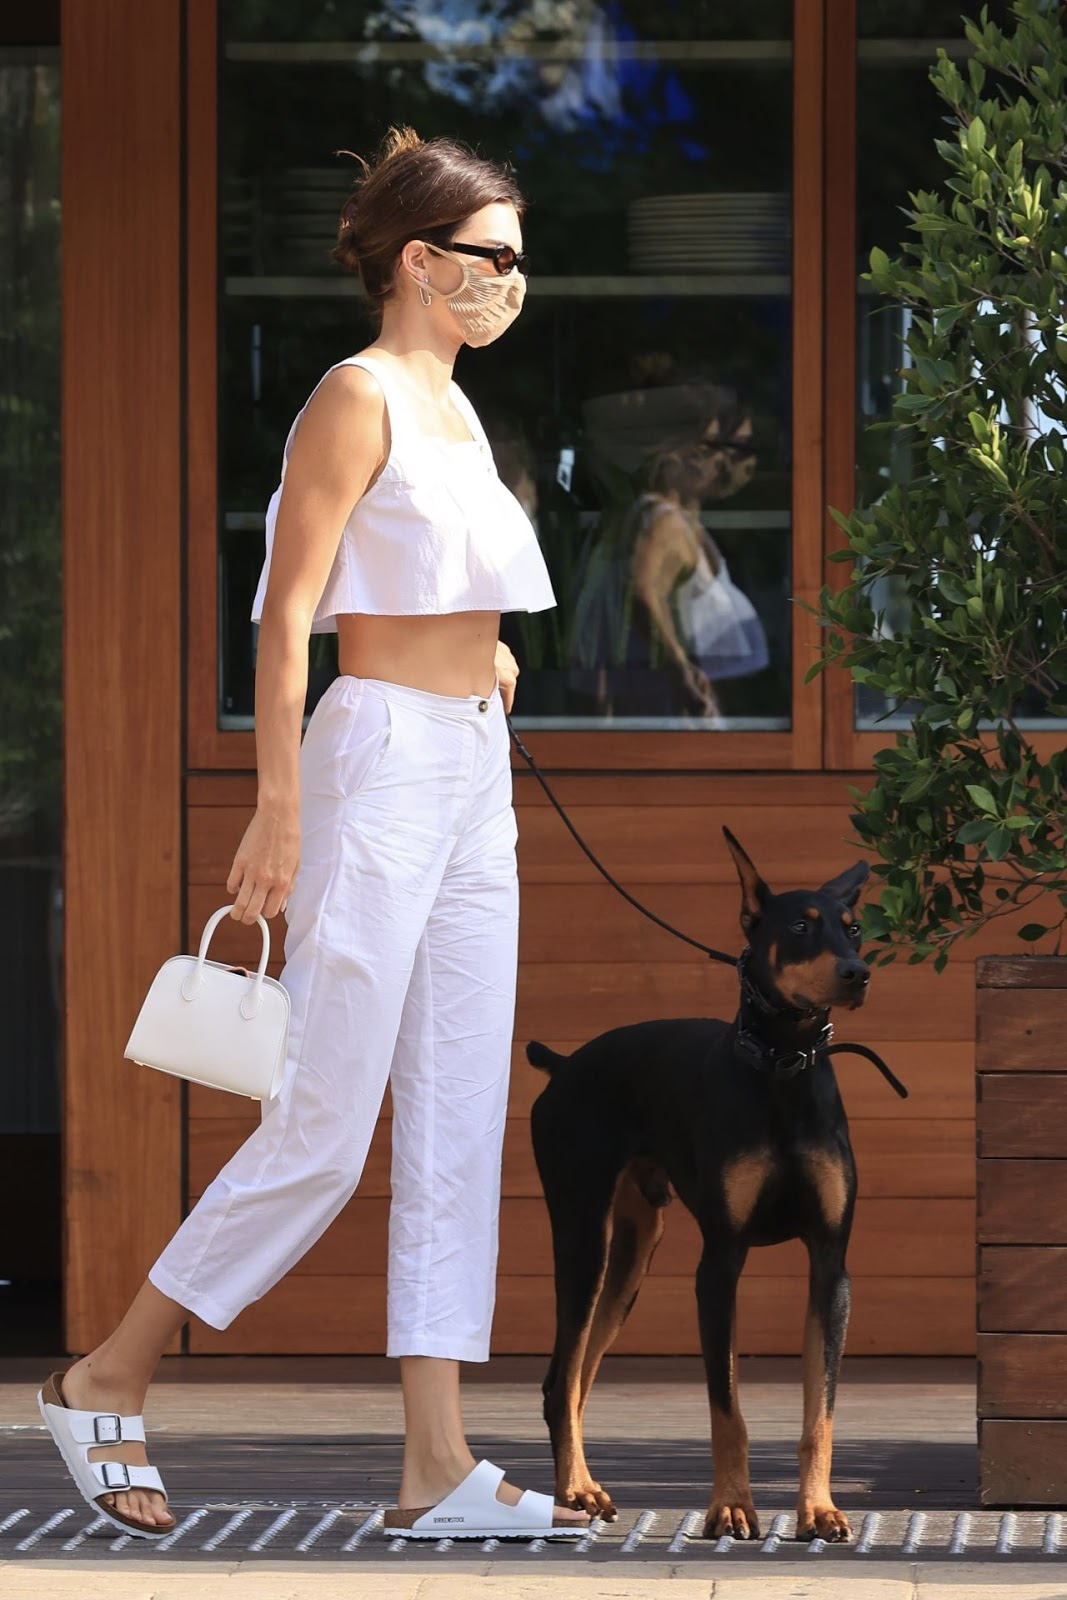 Kendall Jenner flaunts cropped top out and about in Malibu